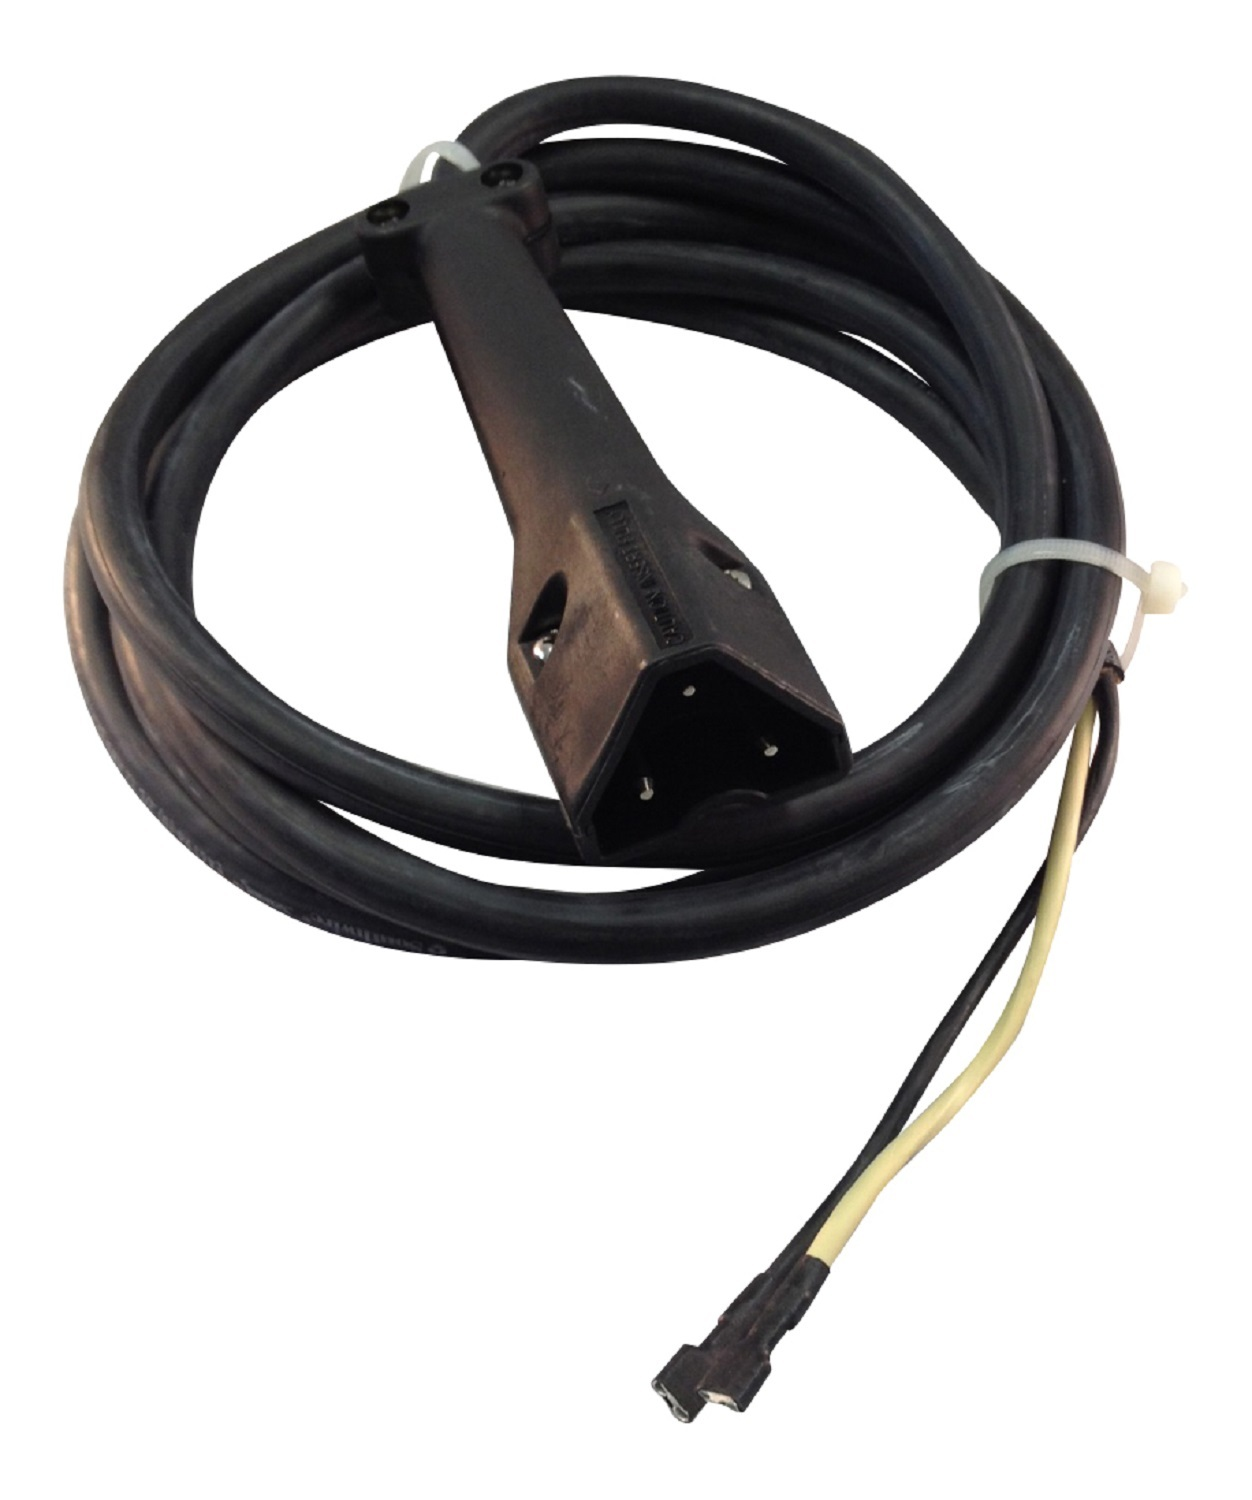 Primary image for 48 Volt Golf Cart Charger Replacement Cable and EZGo RXV Connector